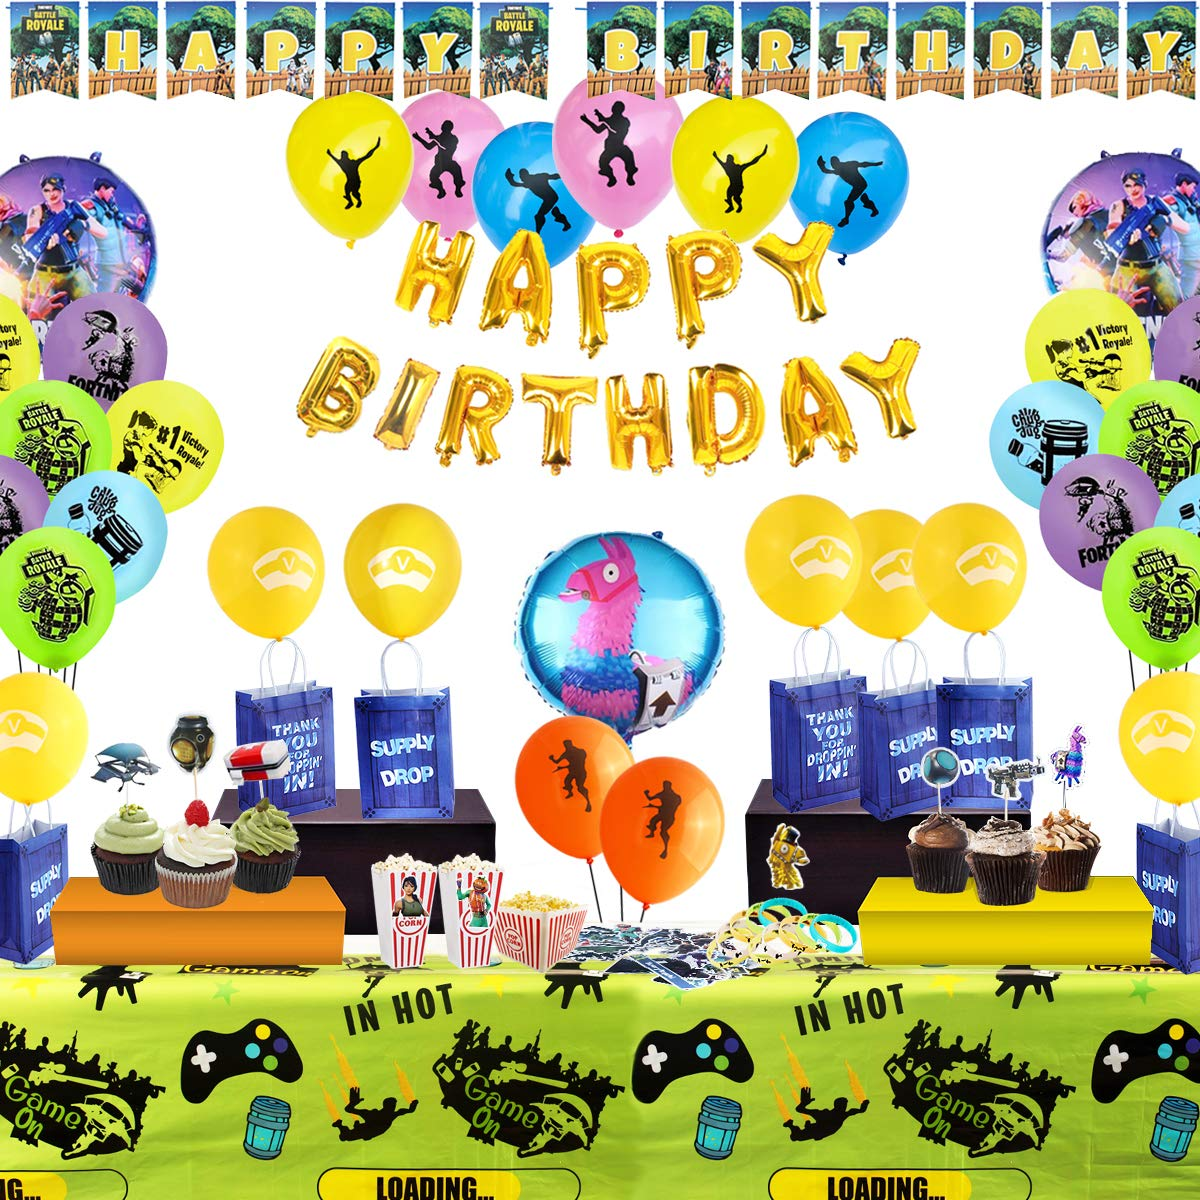 include Balloons 142 pcs Gaming Theme Party Decorations Table Cover Bracelets Banner Stickers Cake Toppers Party Favors Bags Birthday Party Supplies for Game Lovers